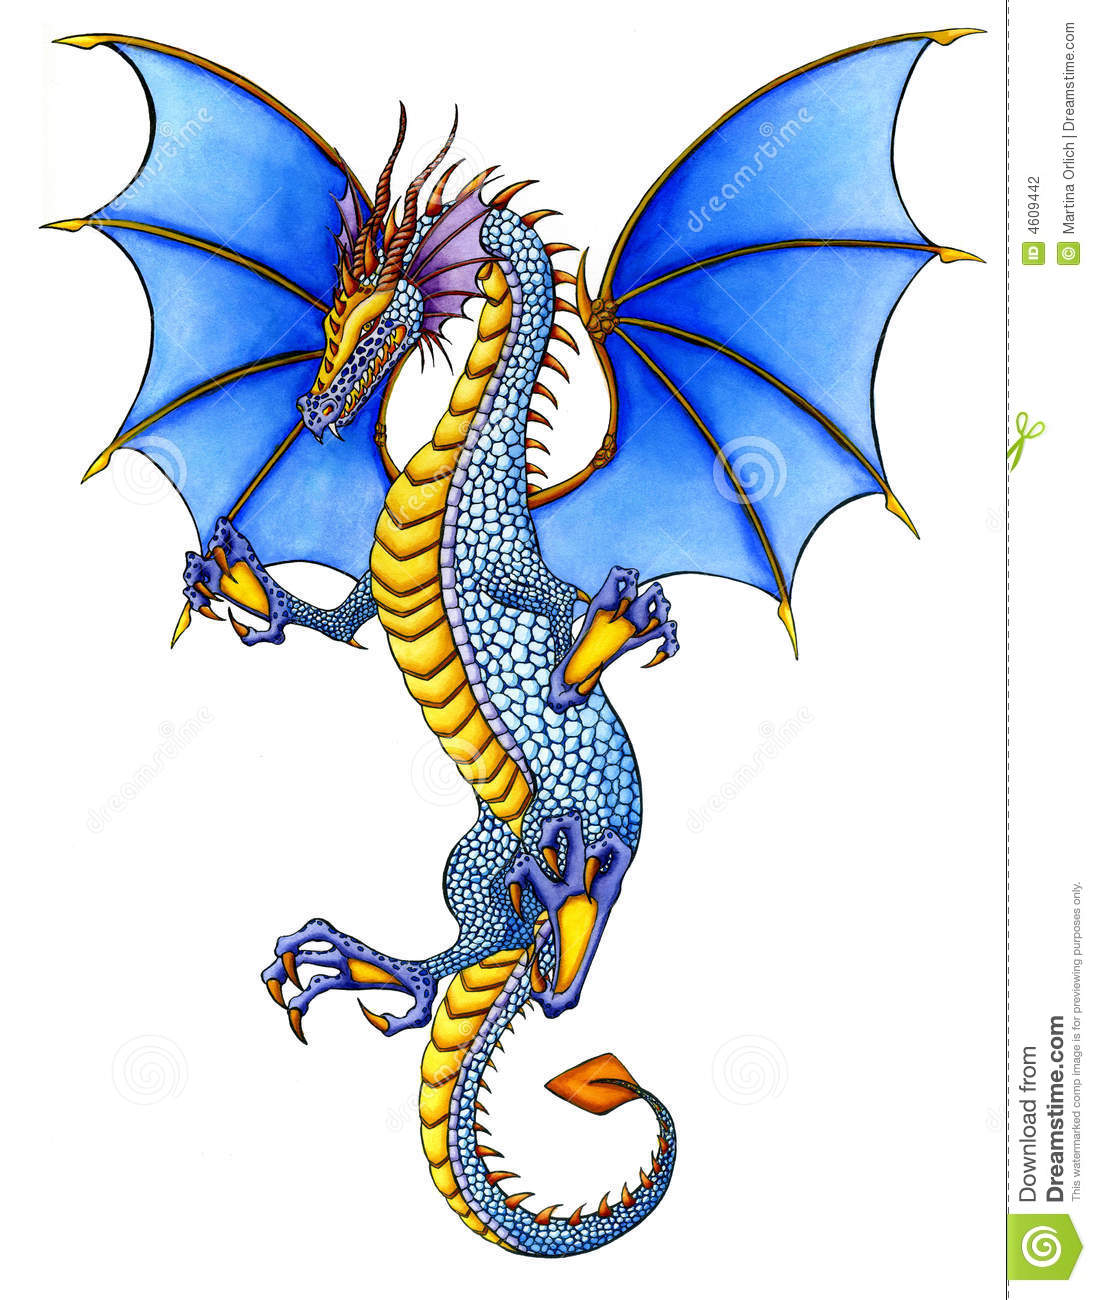 Dragon bleu illustration stock illustration du isolement - Modele dessin dragon ...